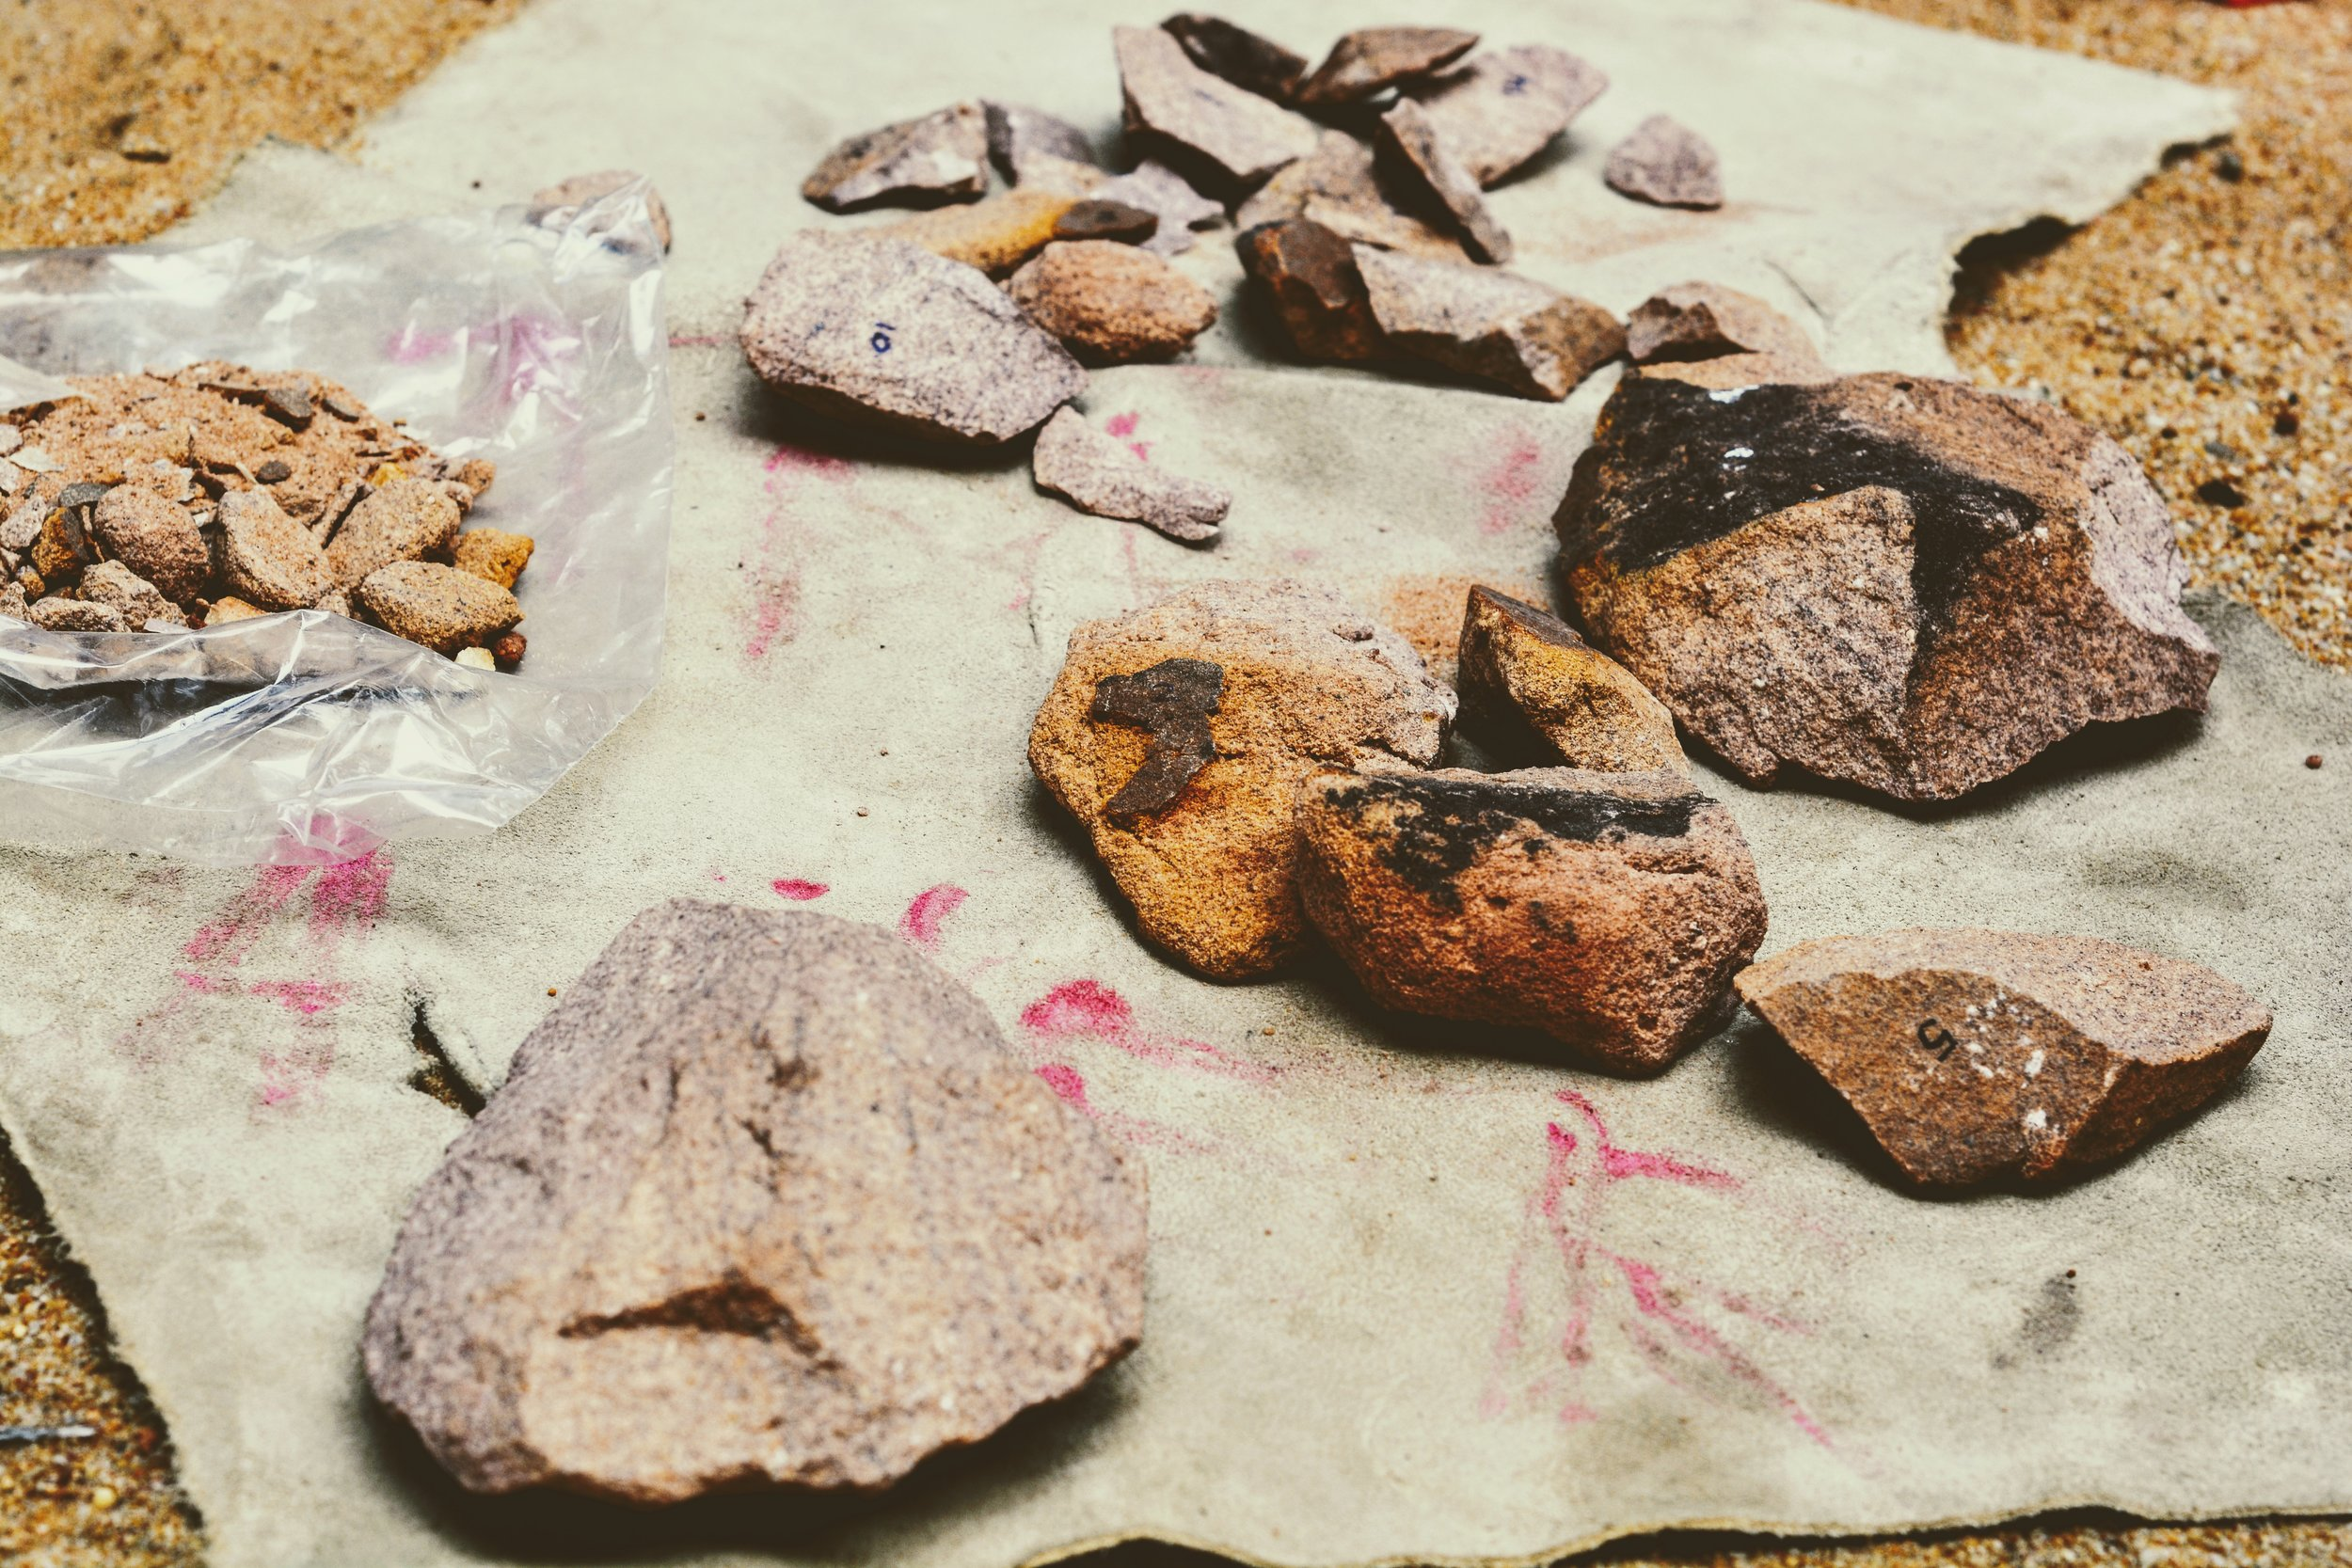 The flakes of a stone tool could serve as a sharp blade or help piece the jigsaw puzzle of a missing tool.